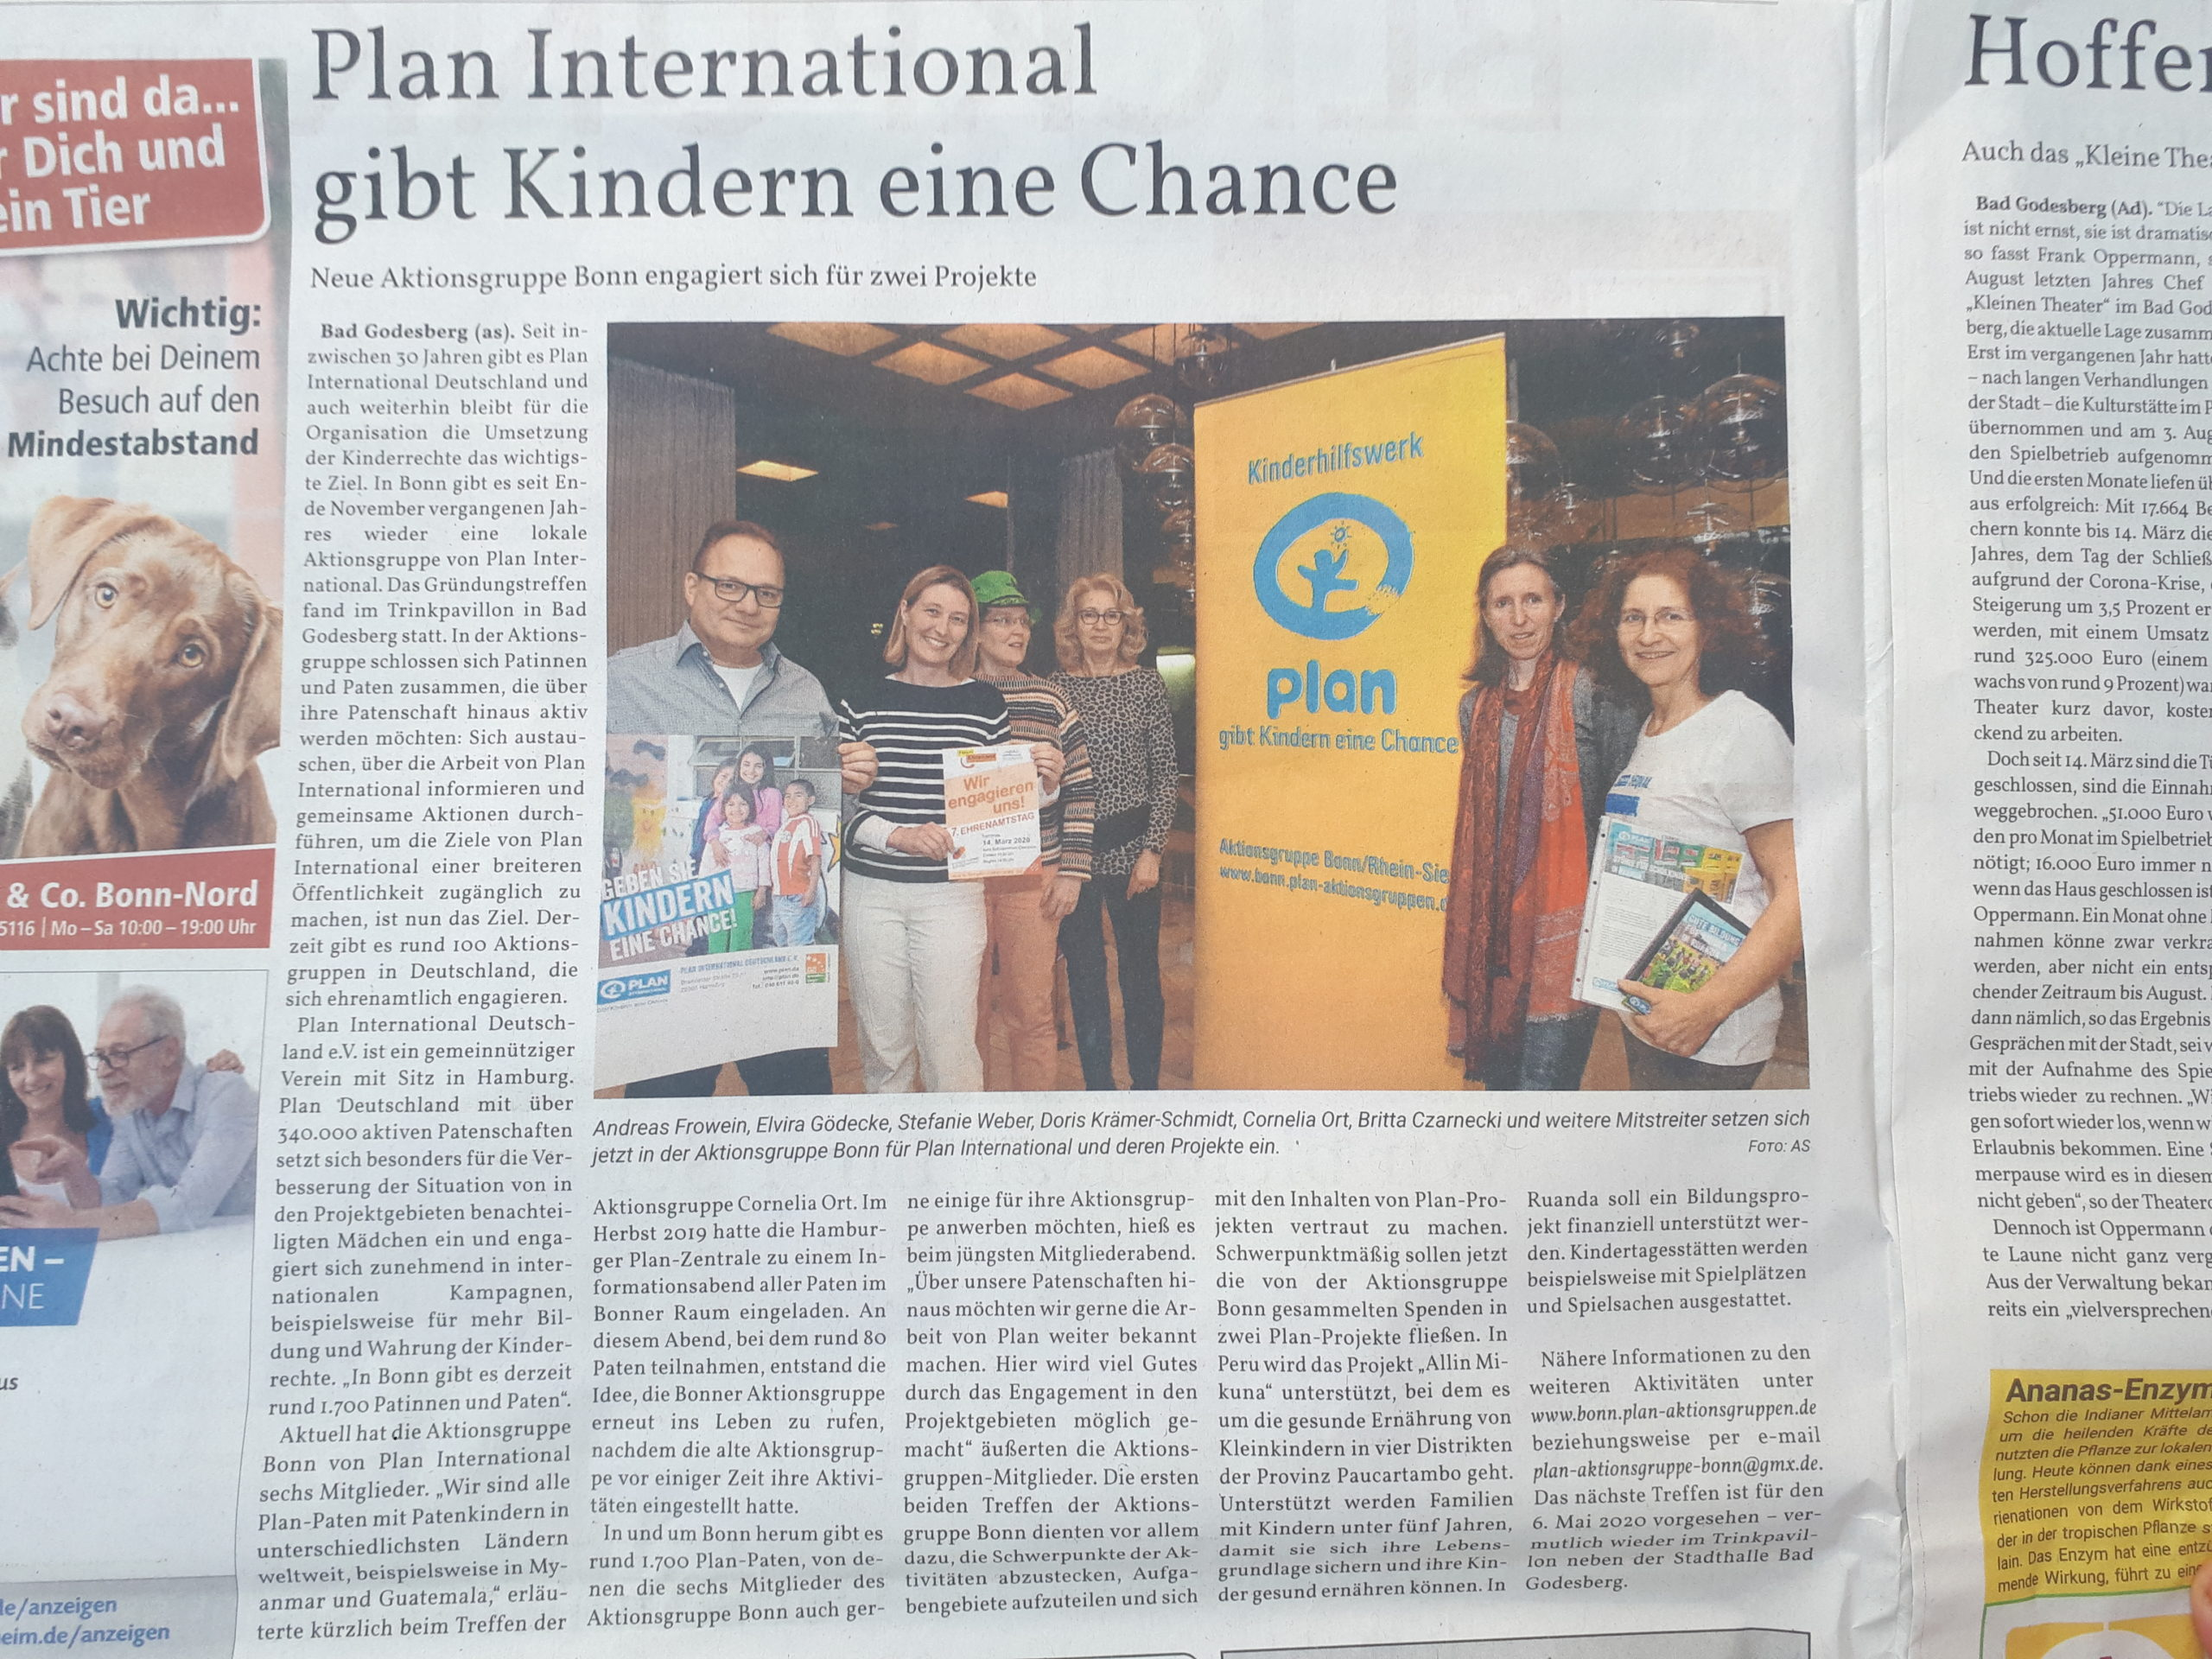 Plan International gibt Kindern eine Chance